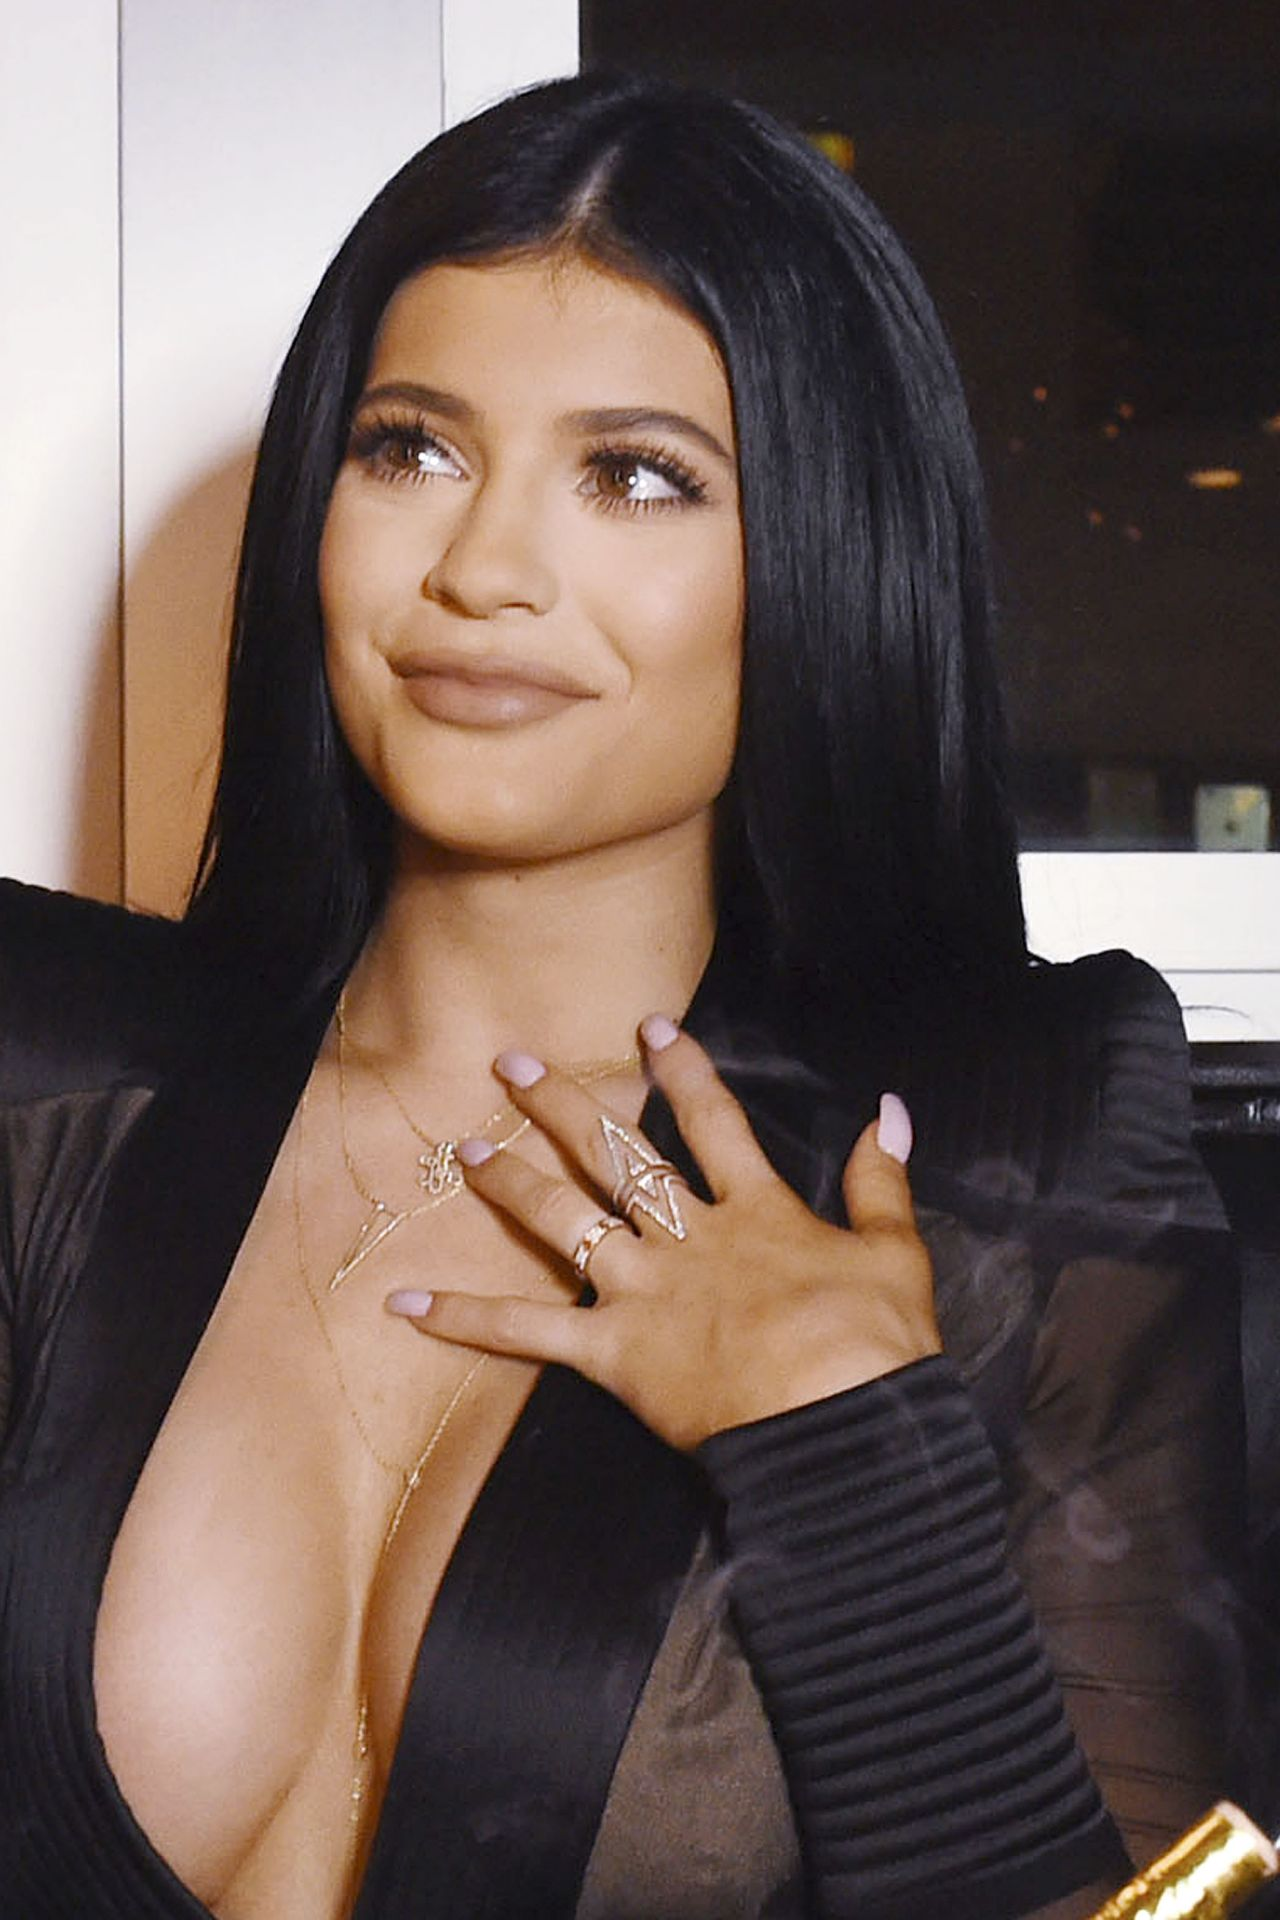 Kylie Jenner Sugar Factory Opening In Miami Beach June 2015